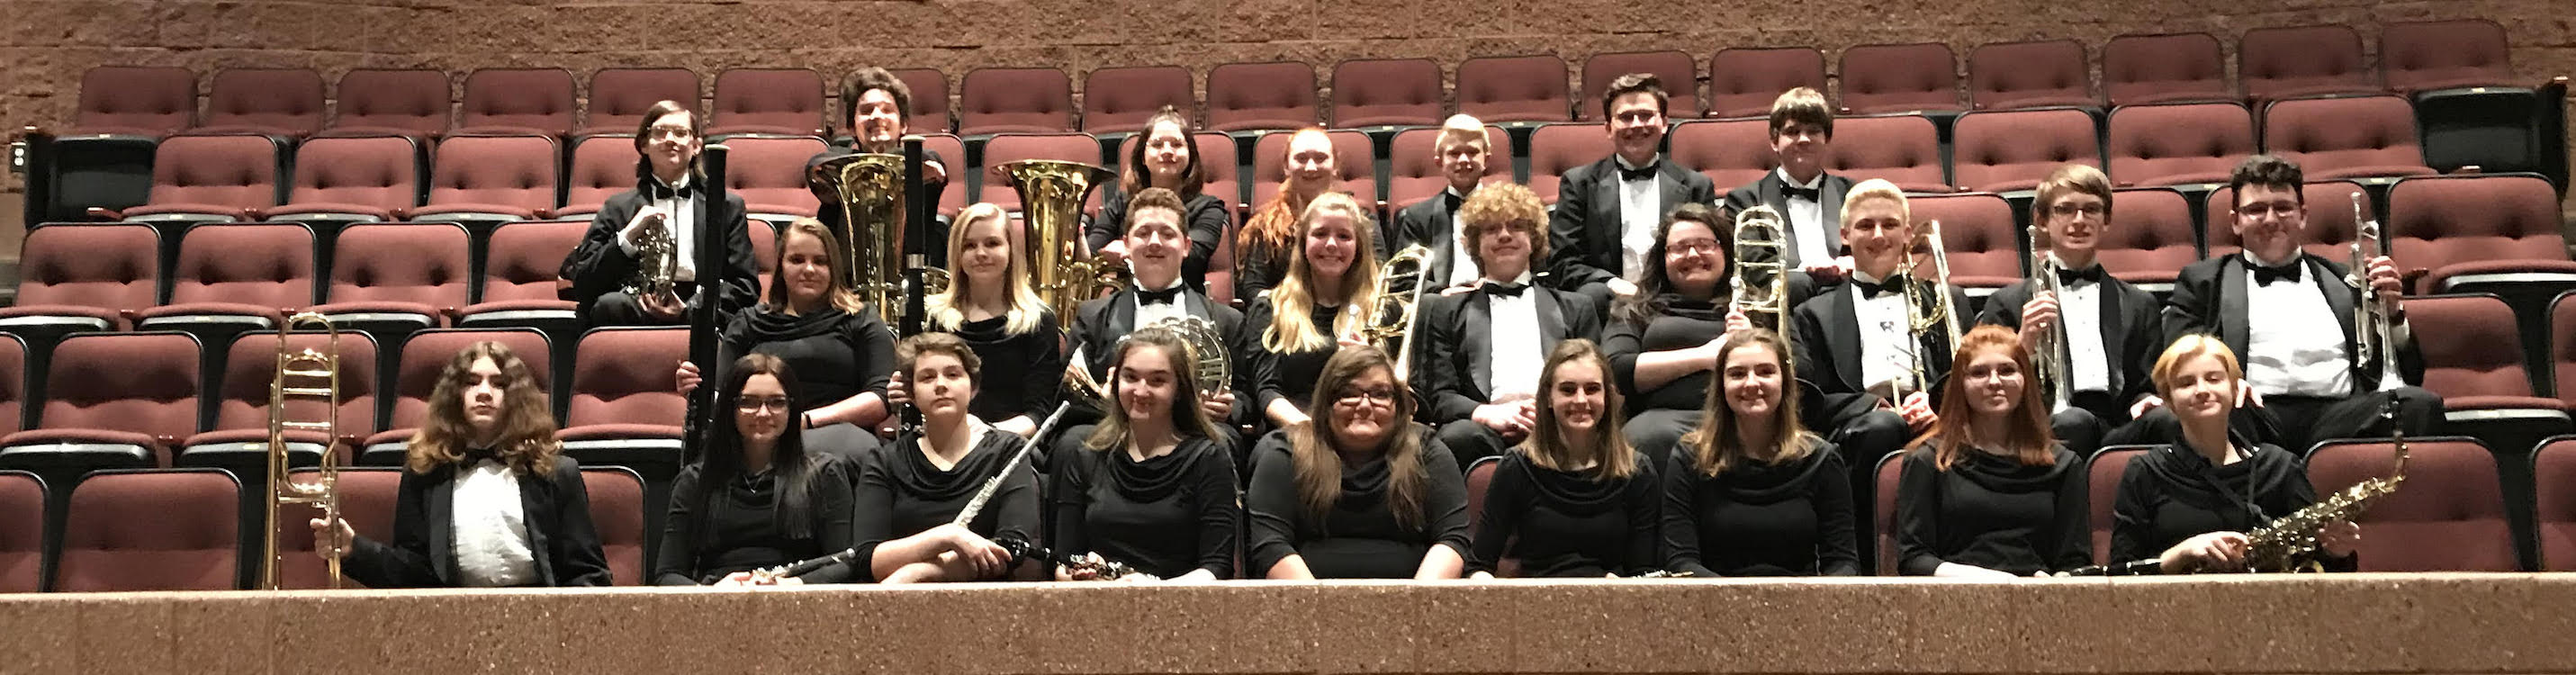 Manistee Benzie County Honor Band 2019